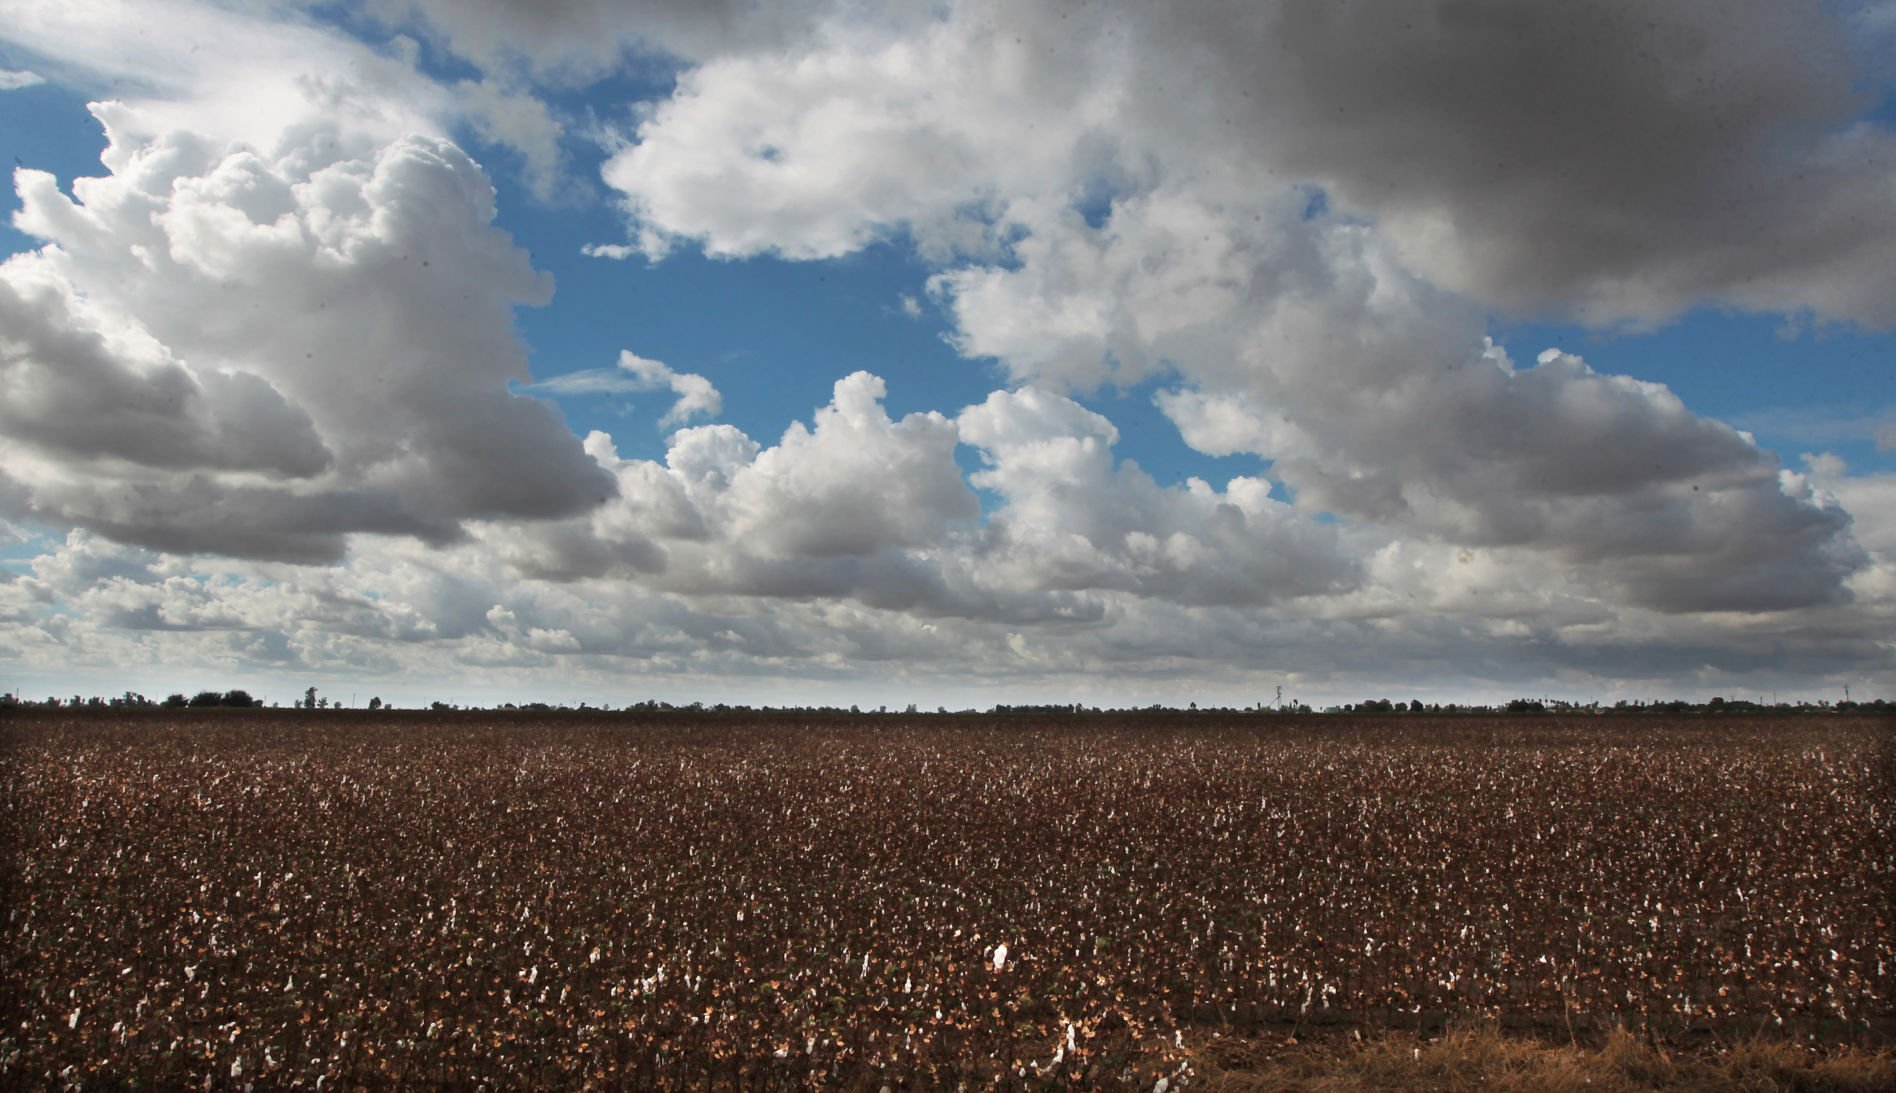 Bakersfield's Jess Smith & Sons Cotton cuts deal with Singapore conglomerate